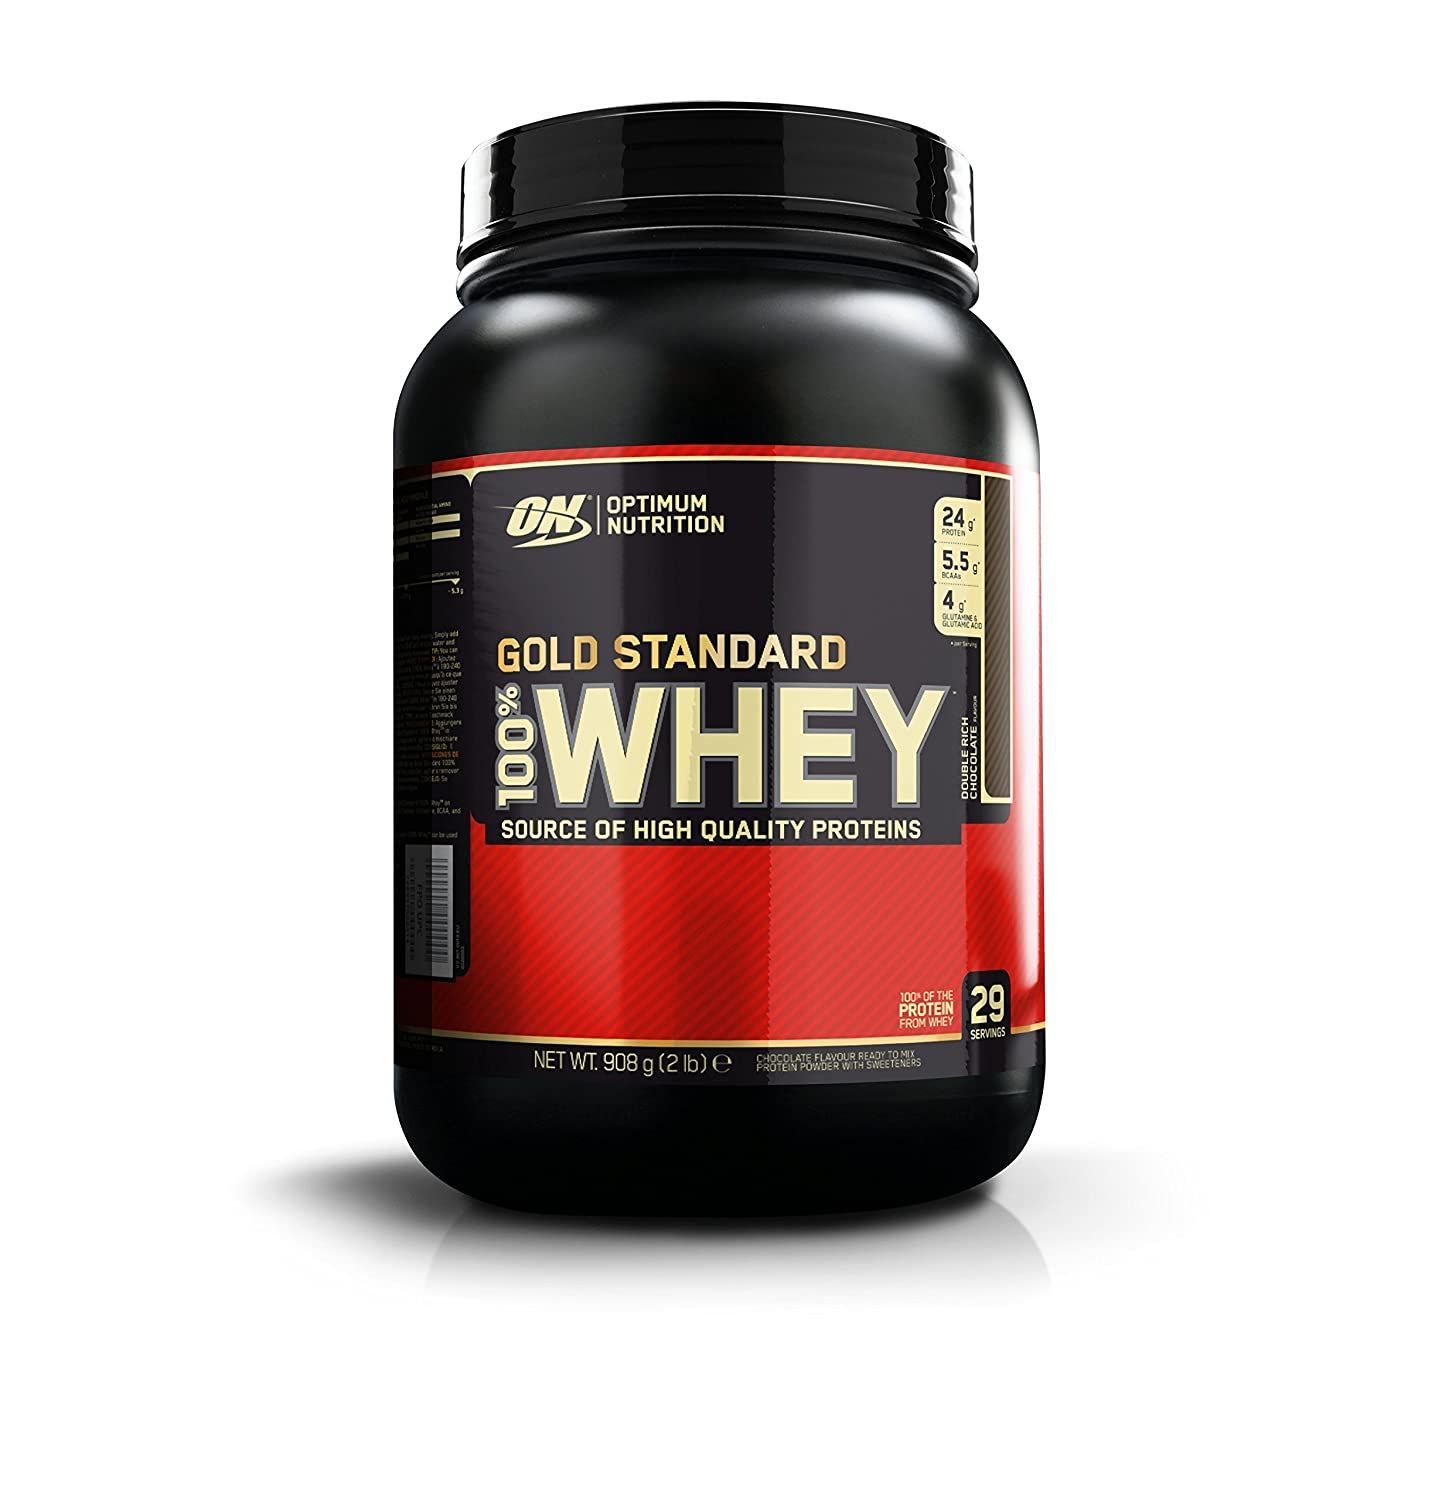 Optimum Nutrition Gold Standard Whey Protein Powder with Glutamine and  Amino Acids 51a7b31a7ba